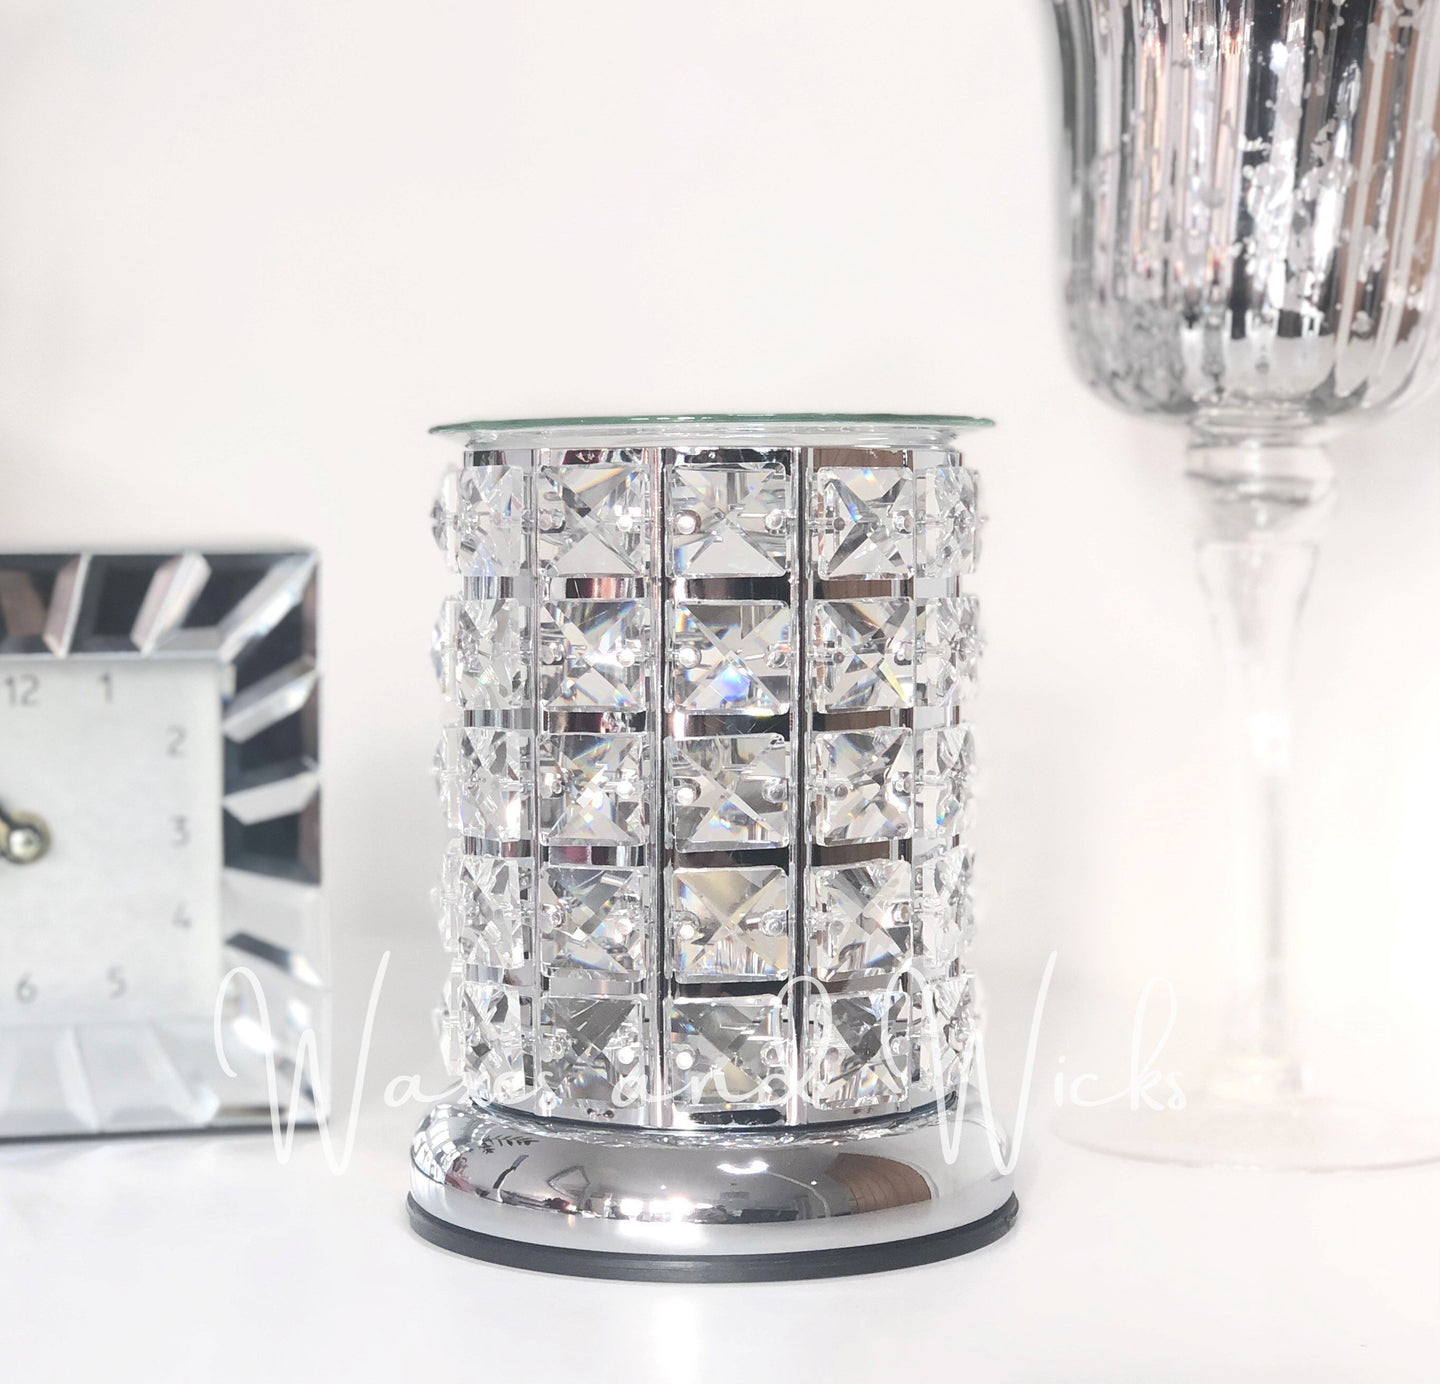 Crystal Wax Warmer Electric Lamp - Waxes and Wicks